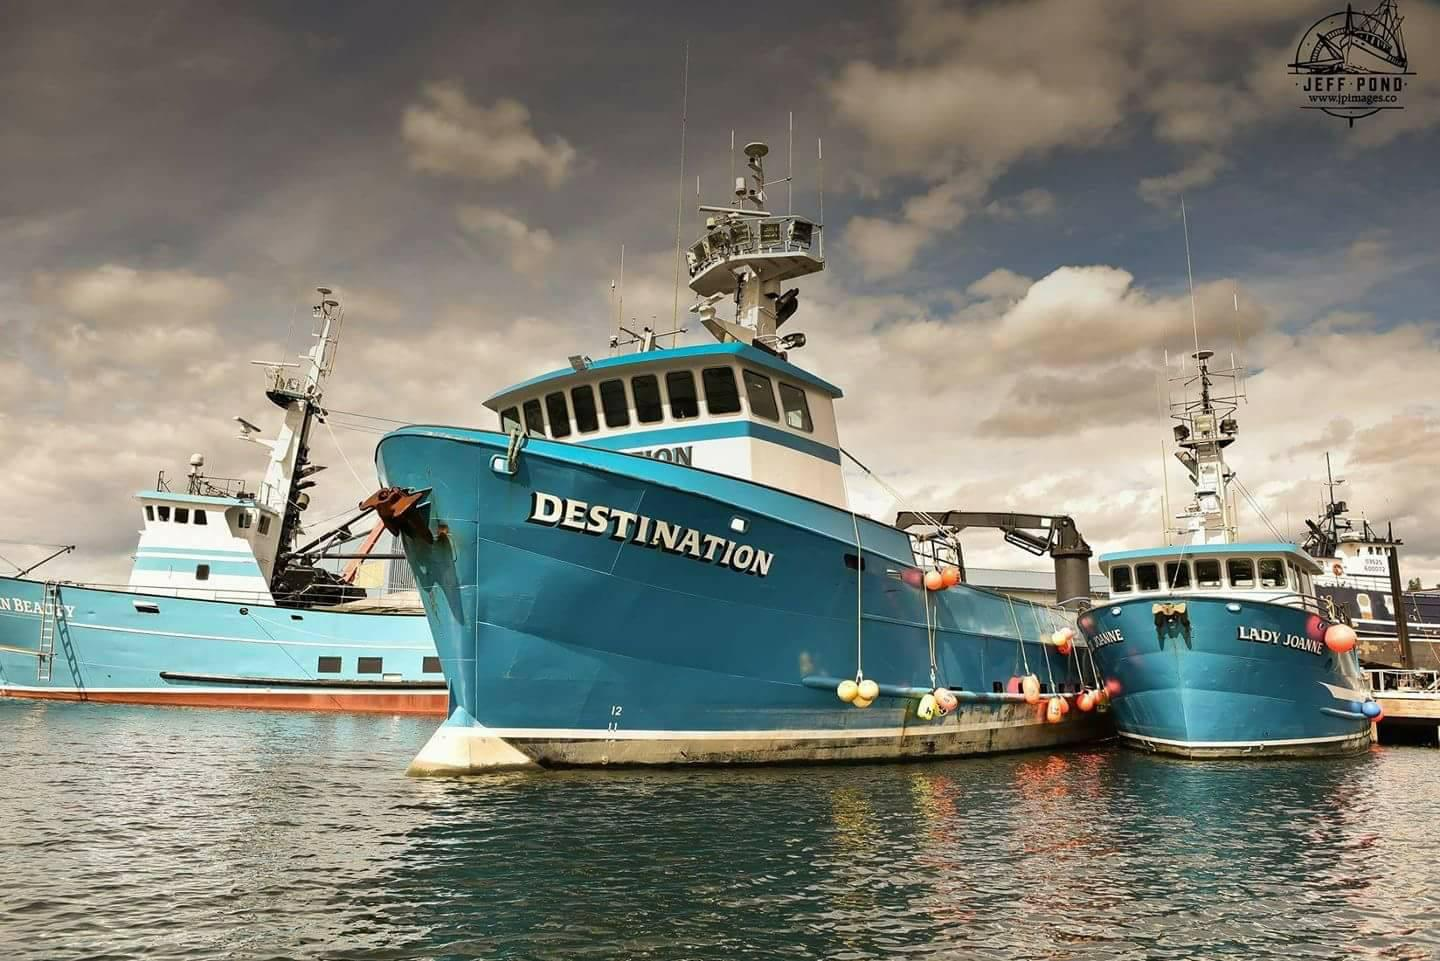 Six F/V Destination crew members died when their boat disappeared in February near St. George Island, marking the deadliest accident in more than a decade for the Bering Sea crab fleet. The Coast Guard is holding public hearings as part of its investigation into the Destination's sinking. (Photo courtesy F/V Destination Memorial Fund)